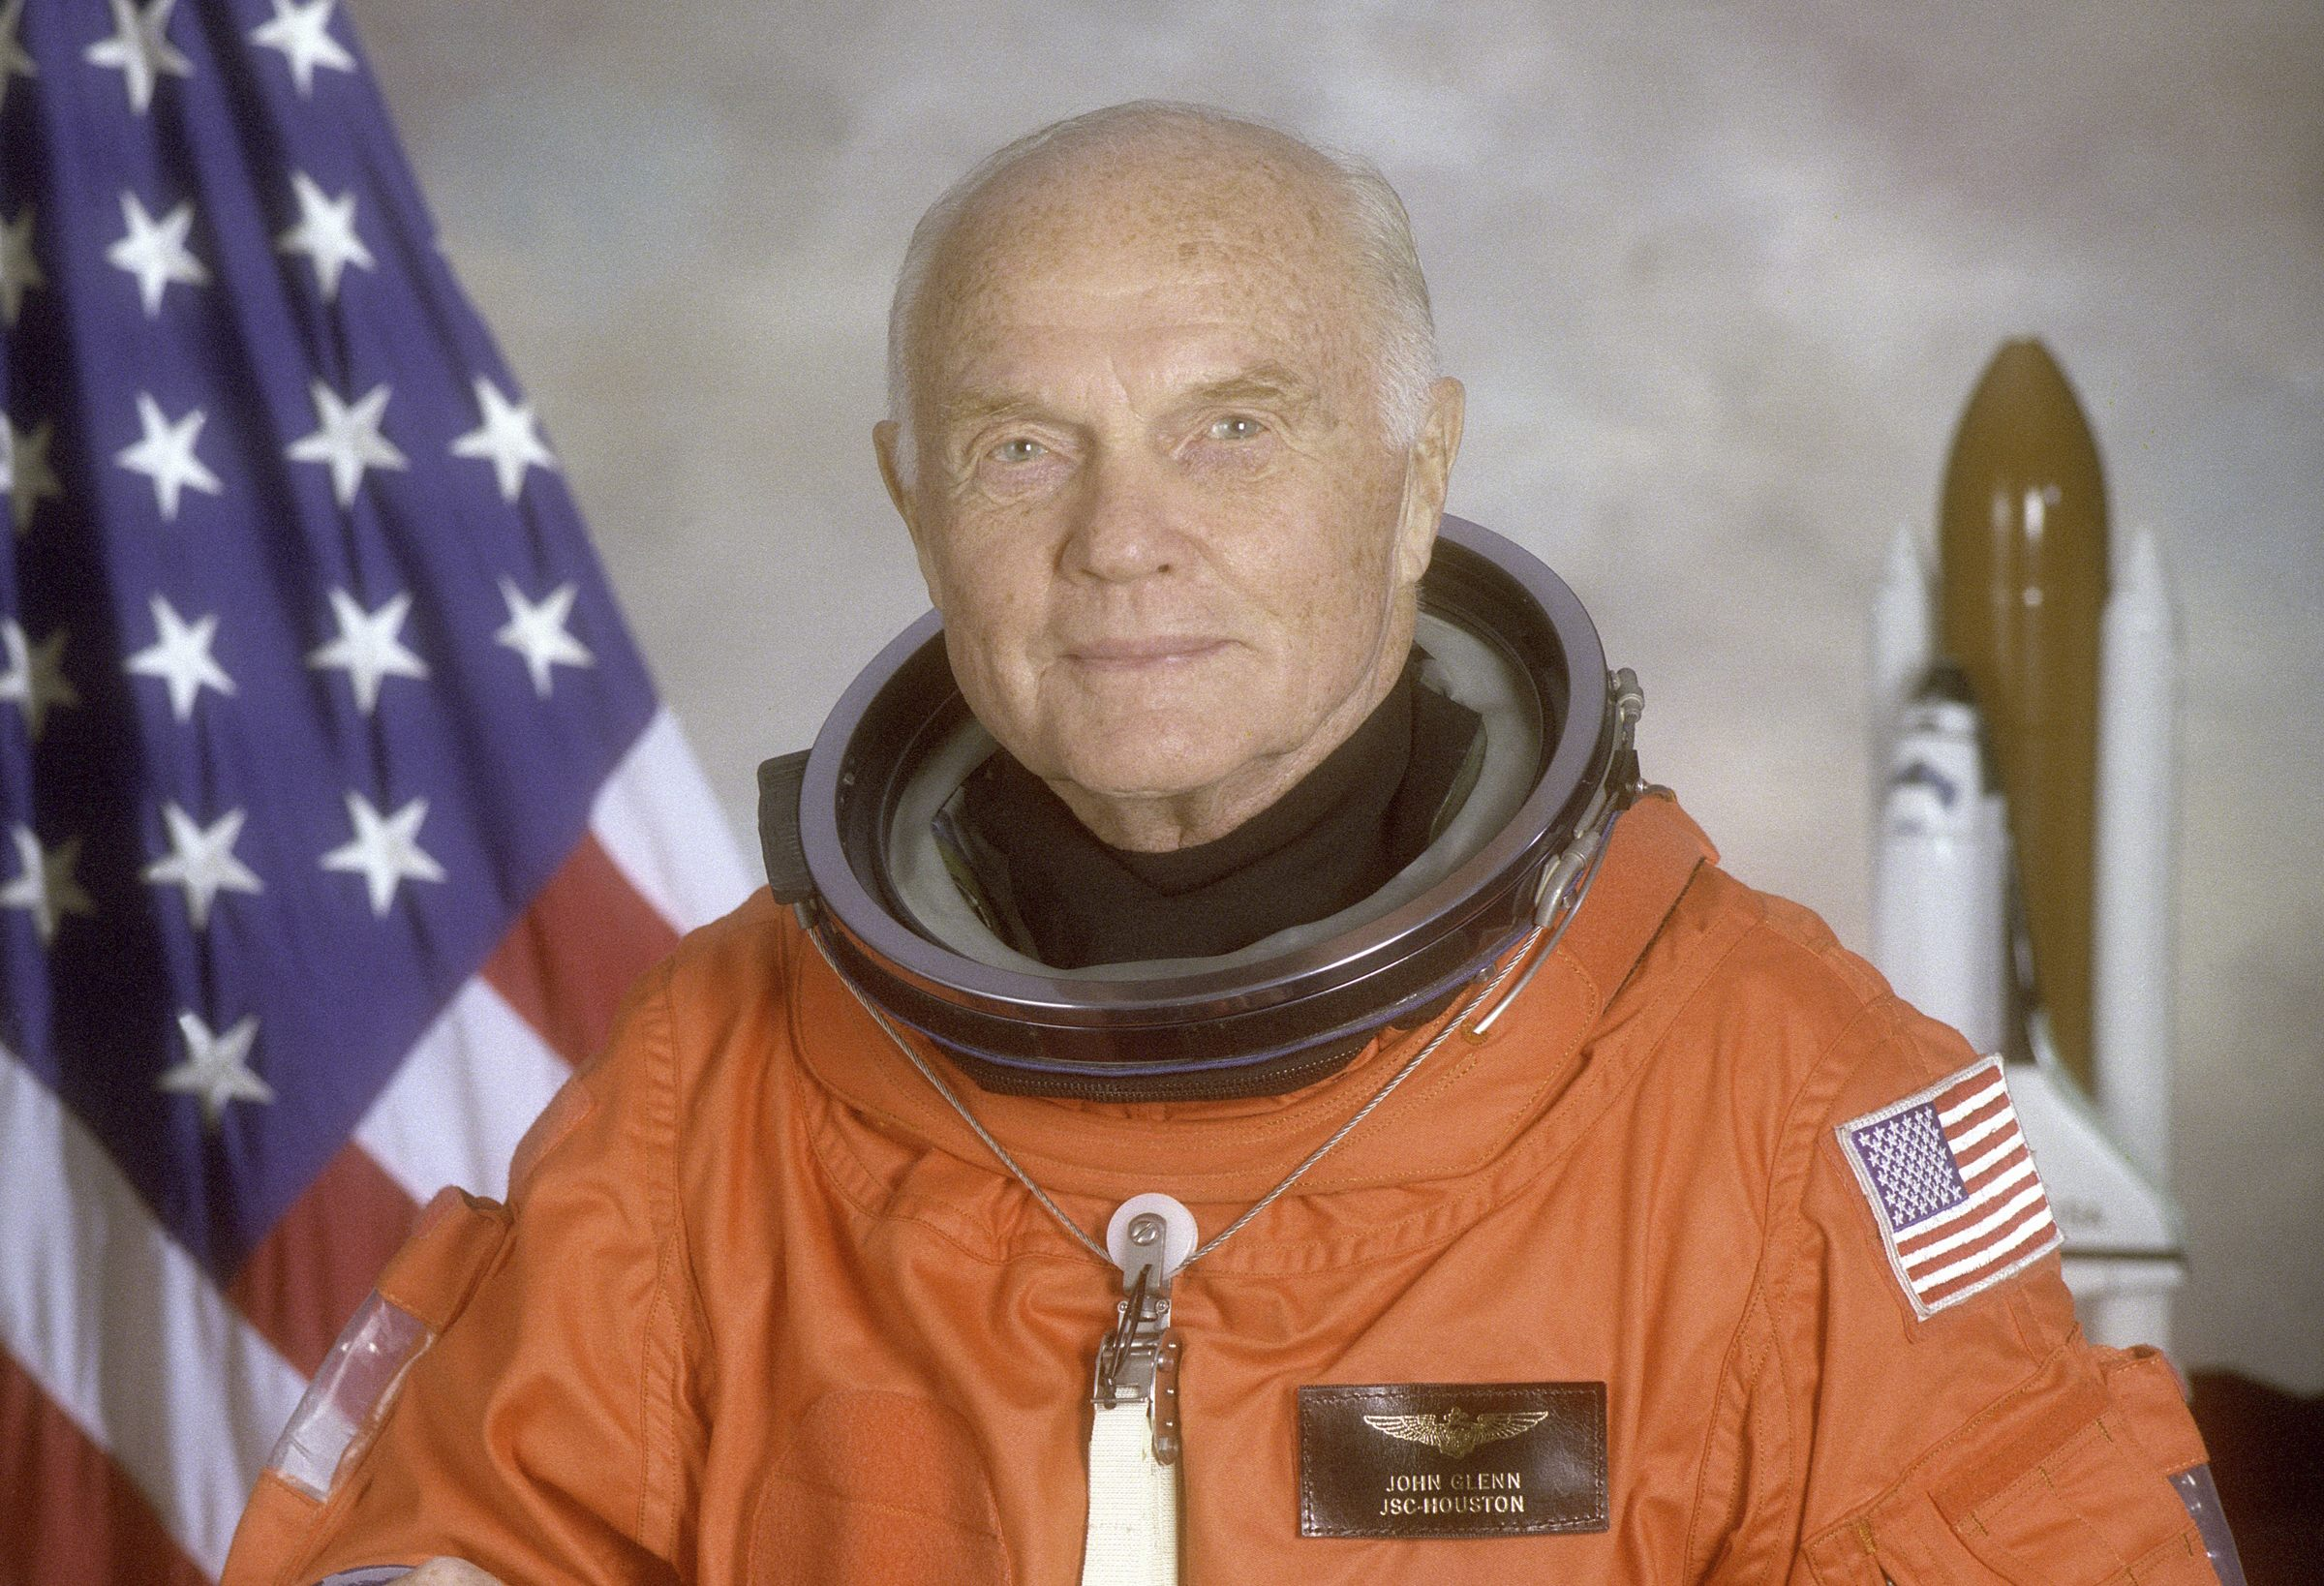 STS-95 crewmember, astronaut and U.S. Senator John Glenn poses for his official NASA photo taken April 14, 1998.